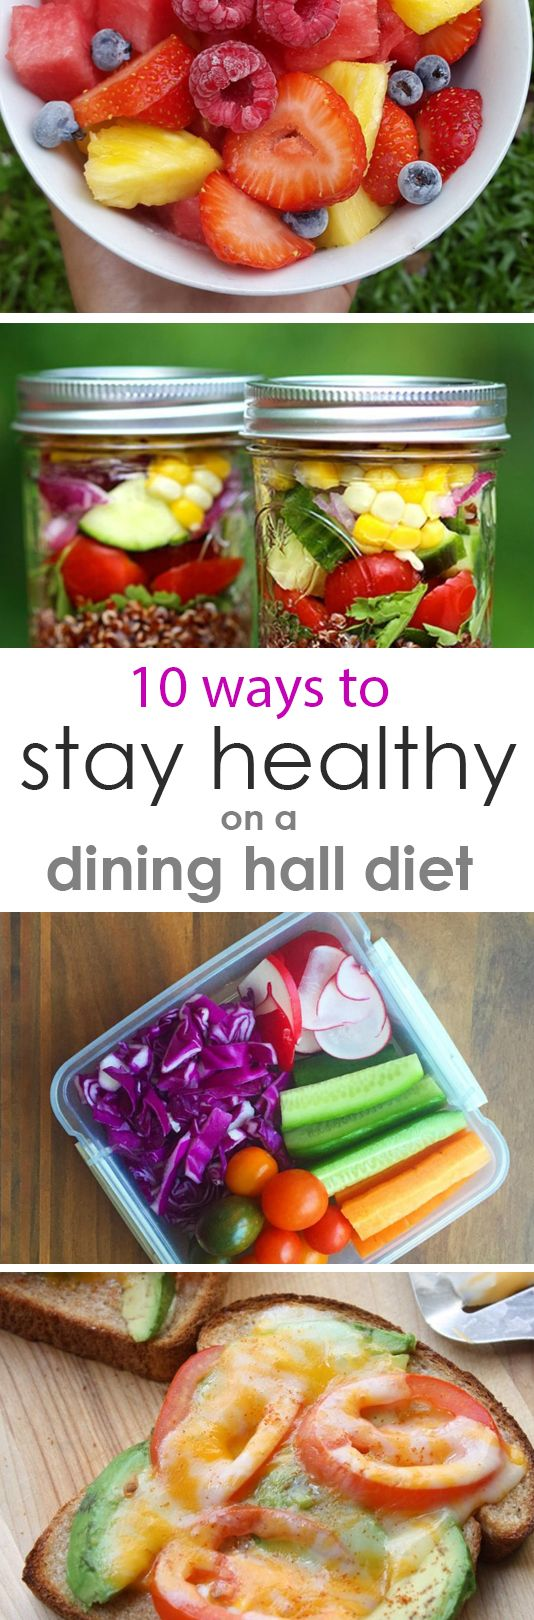 For good health what to eat - 10 Ways To Stay Healthy On A College Dining Hall Diet